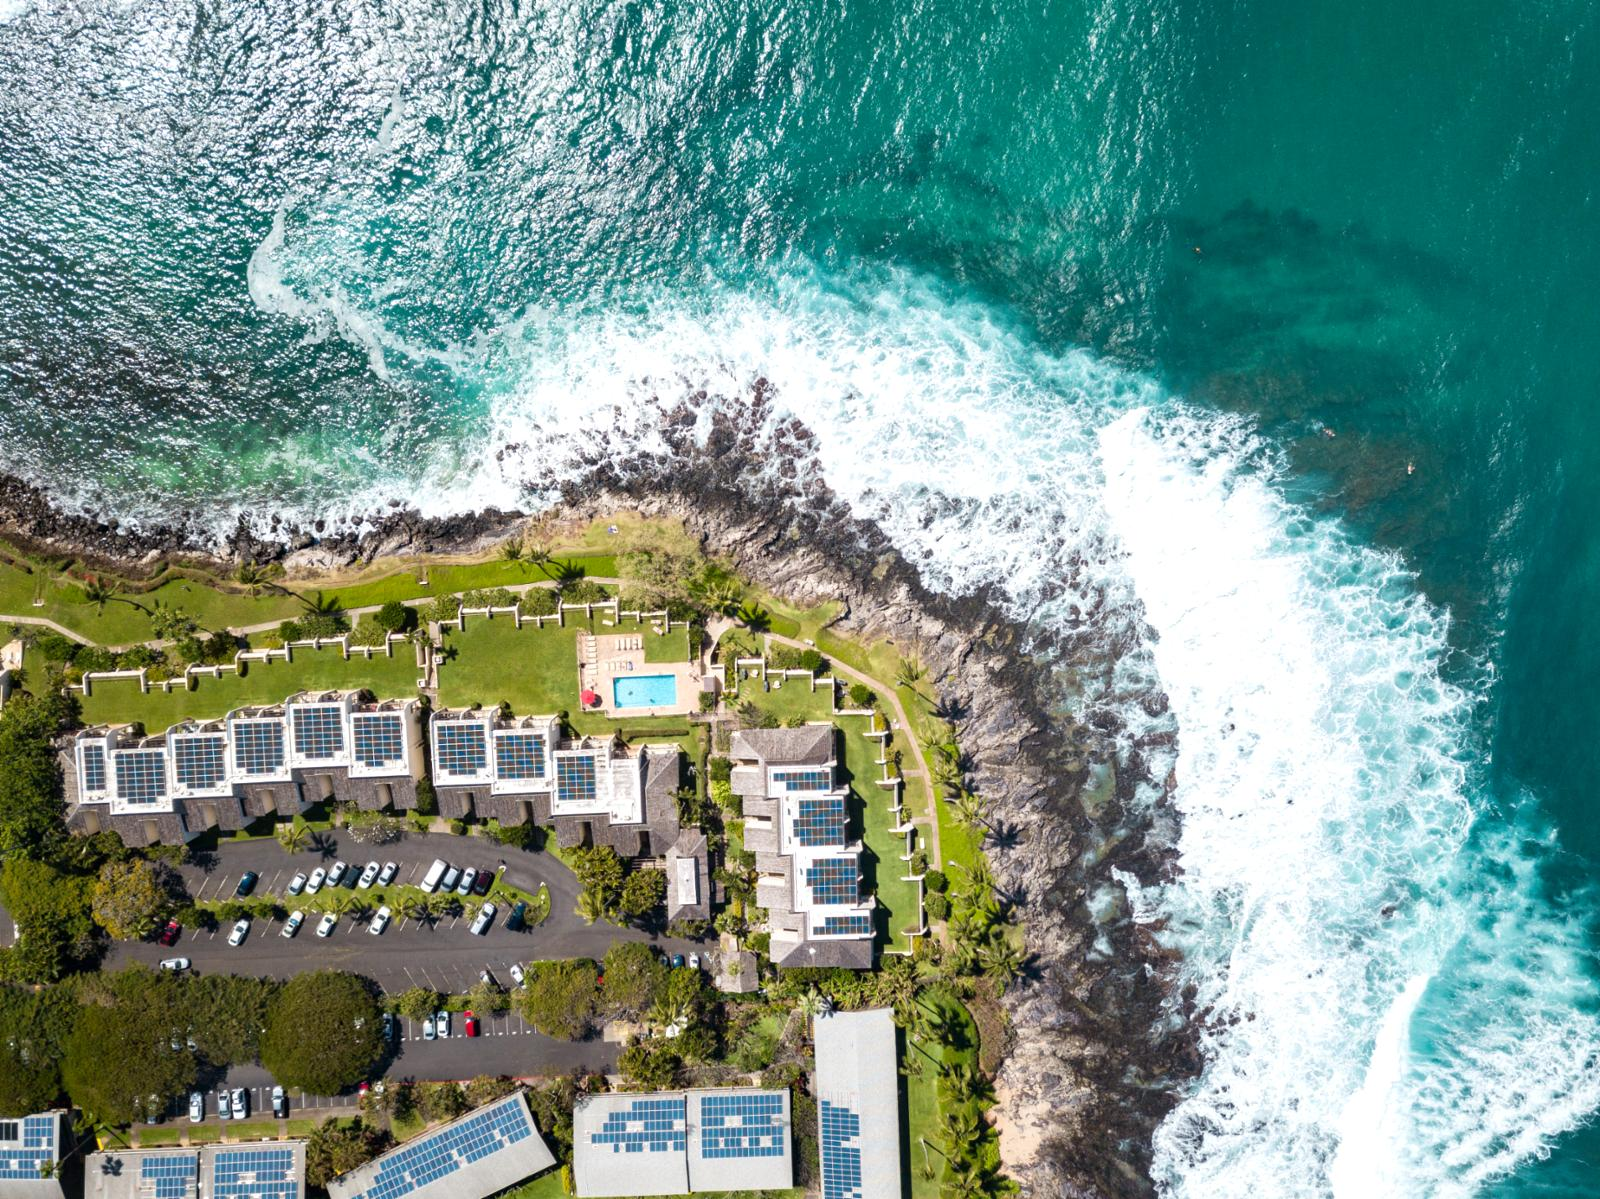 Welcome to Napili Point Resort!